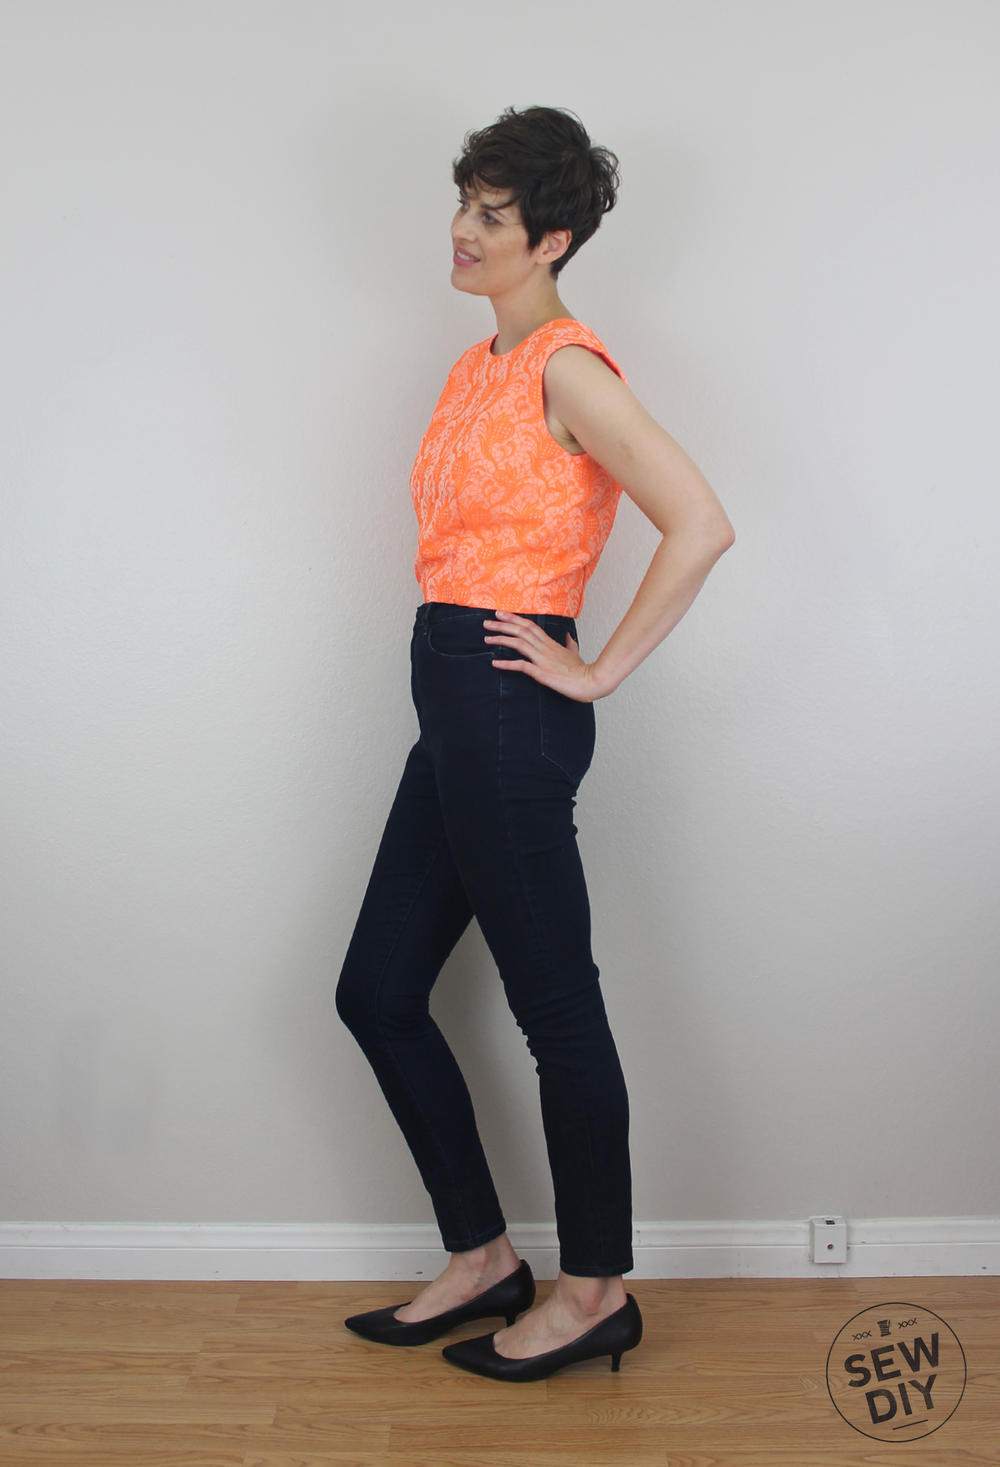 Sew DIY Brocade Crop Top Side